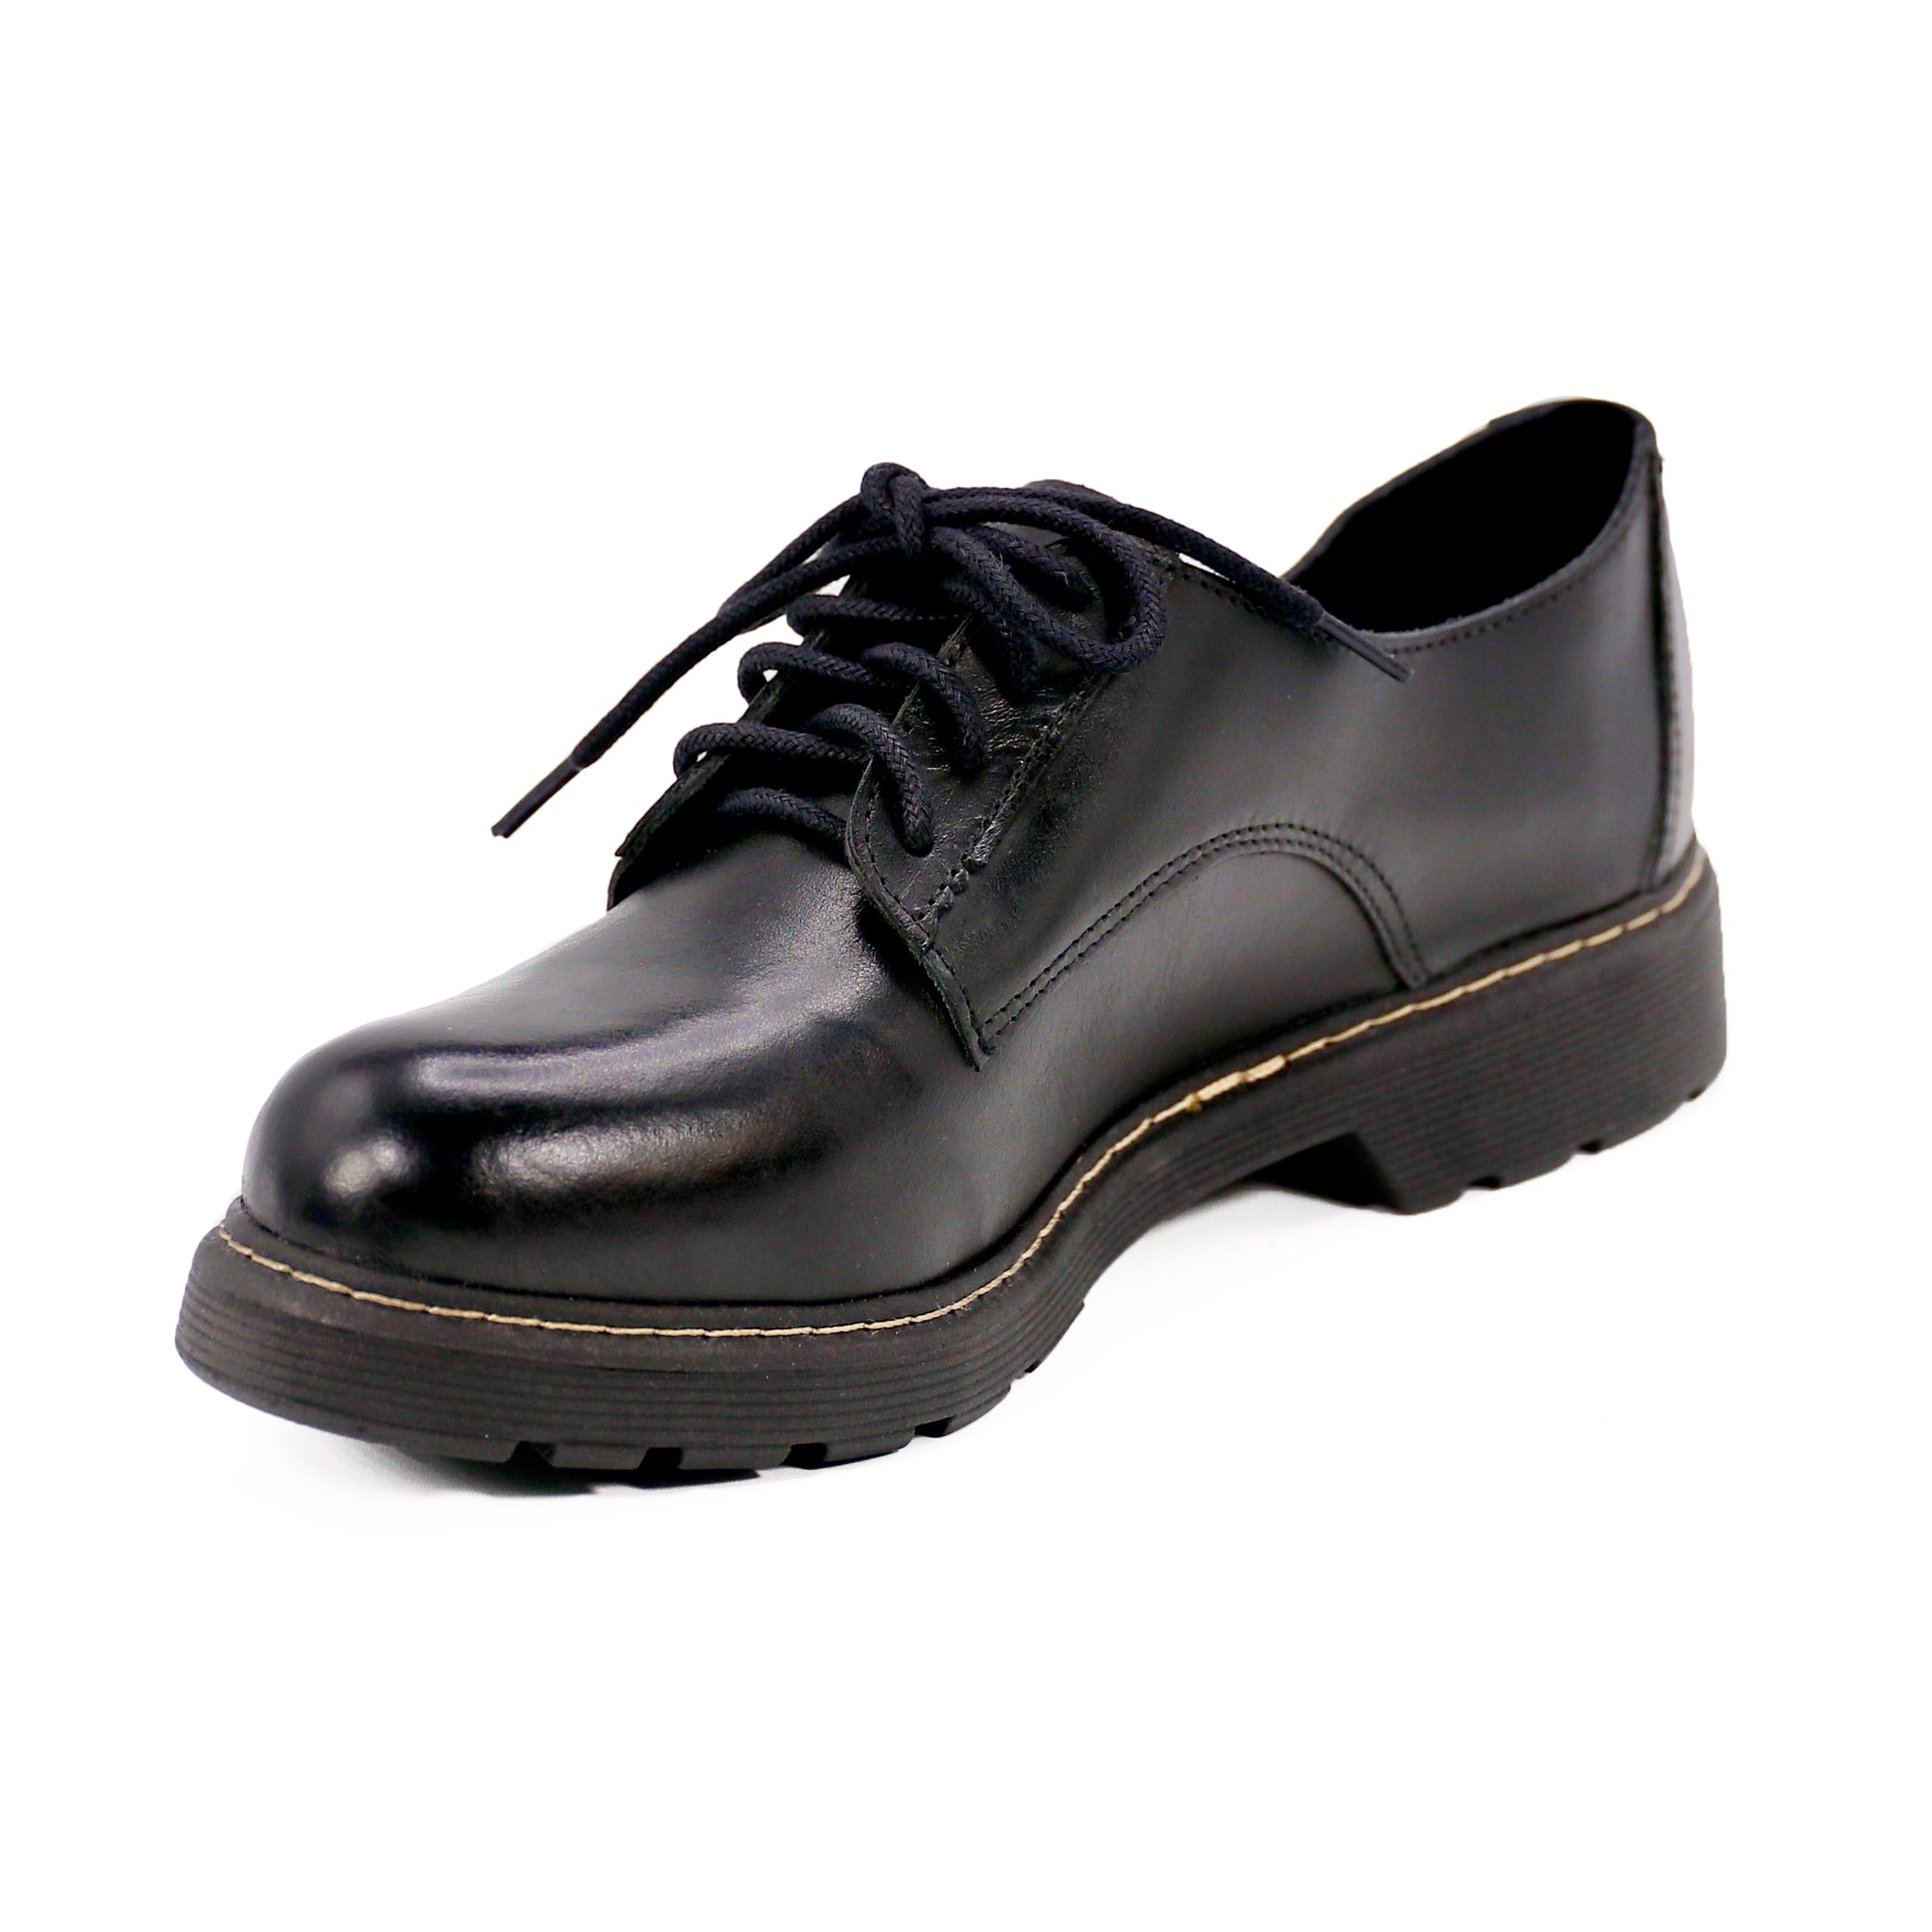 Women's Glossy Black Shoes by Designer